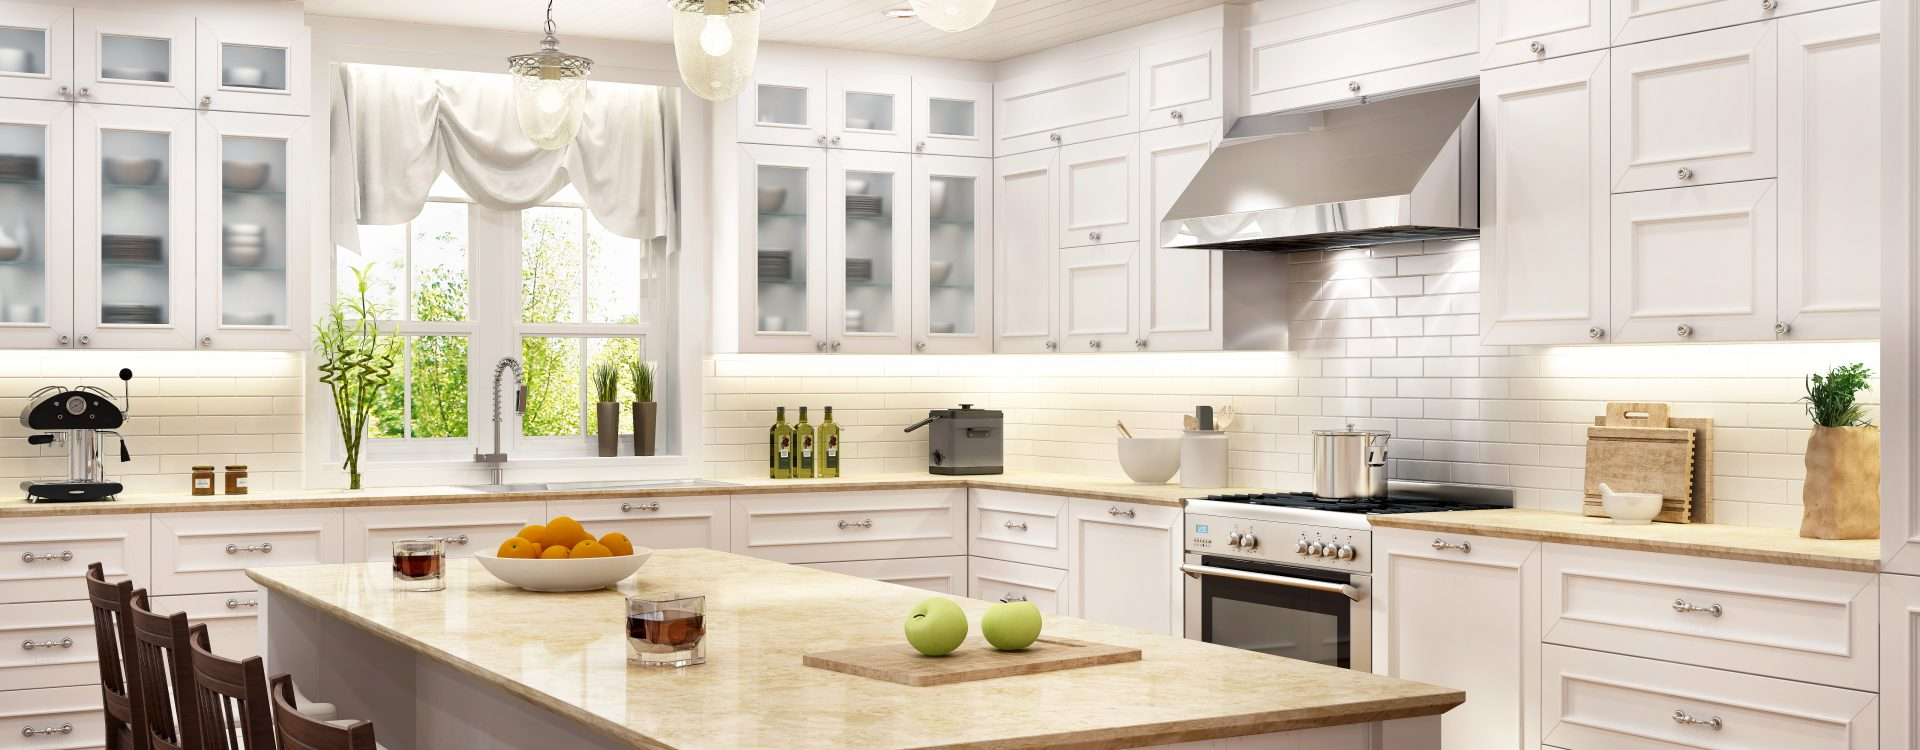 Shaker kitchen cabinets for contrast